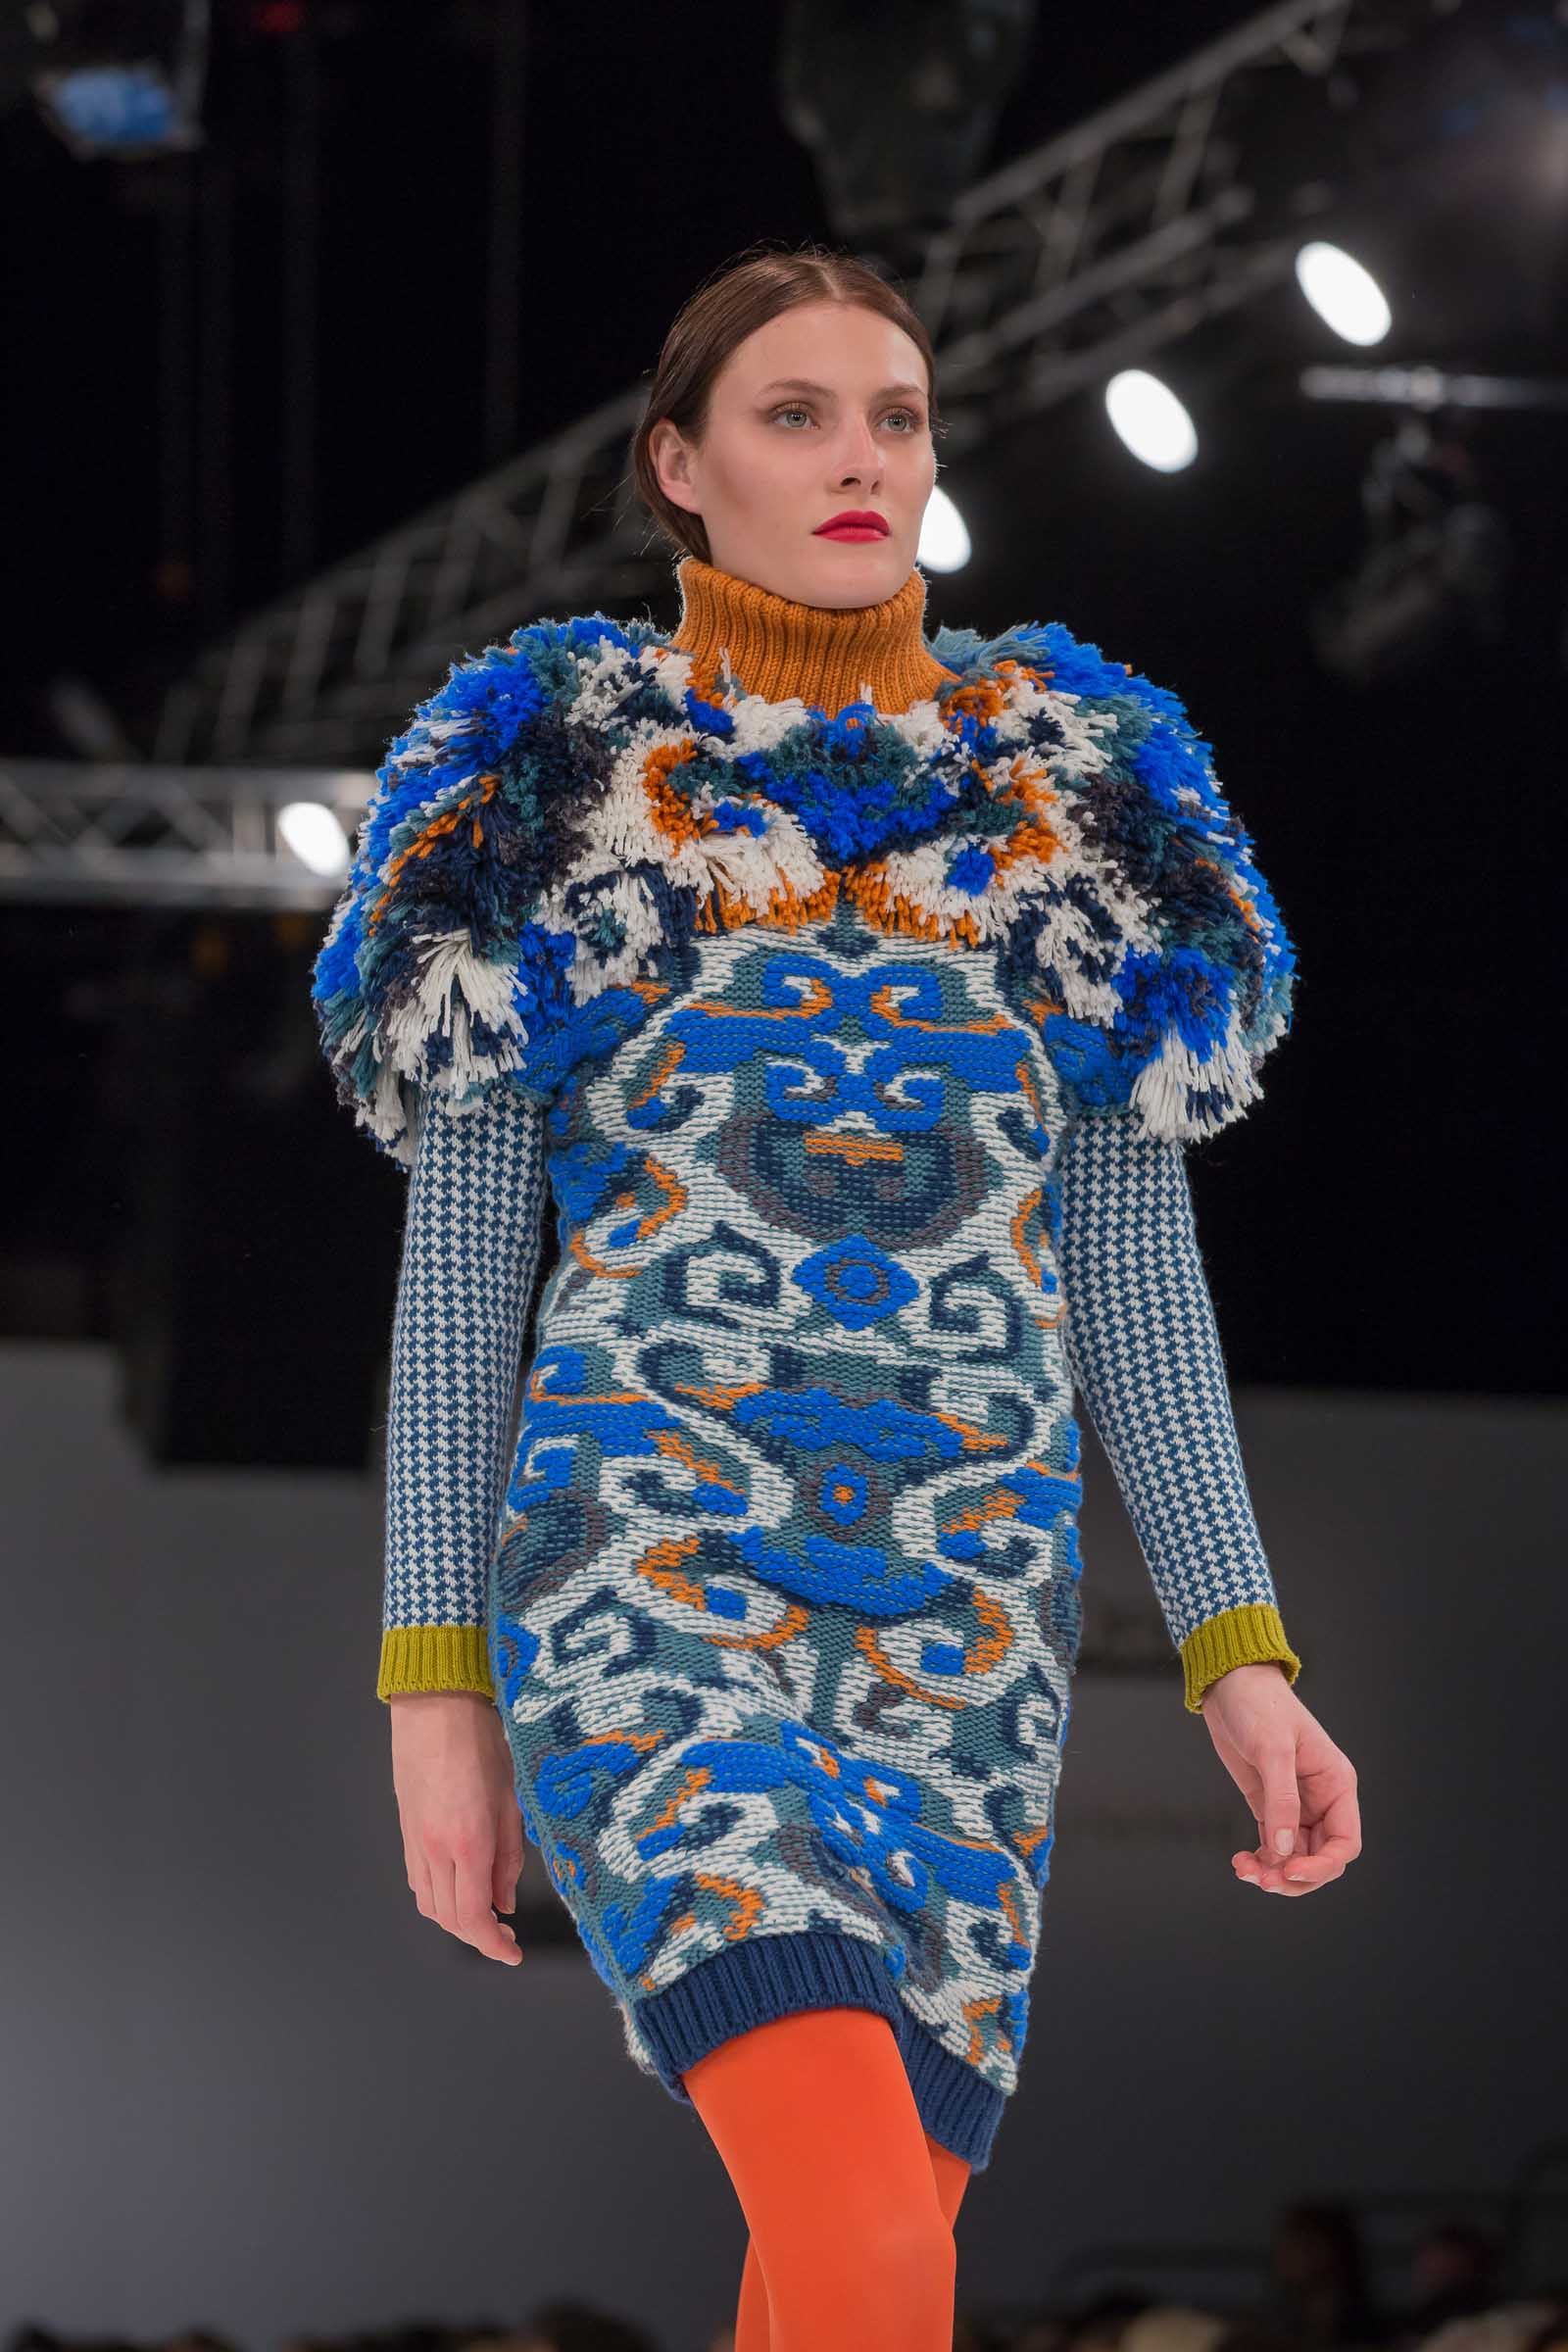 Knitwear by Thea Sanders. Photo: David Baird.